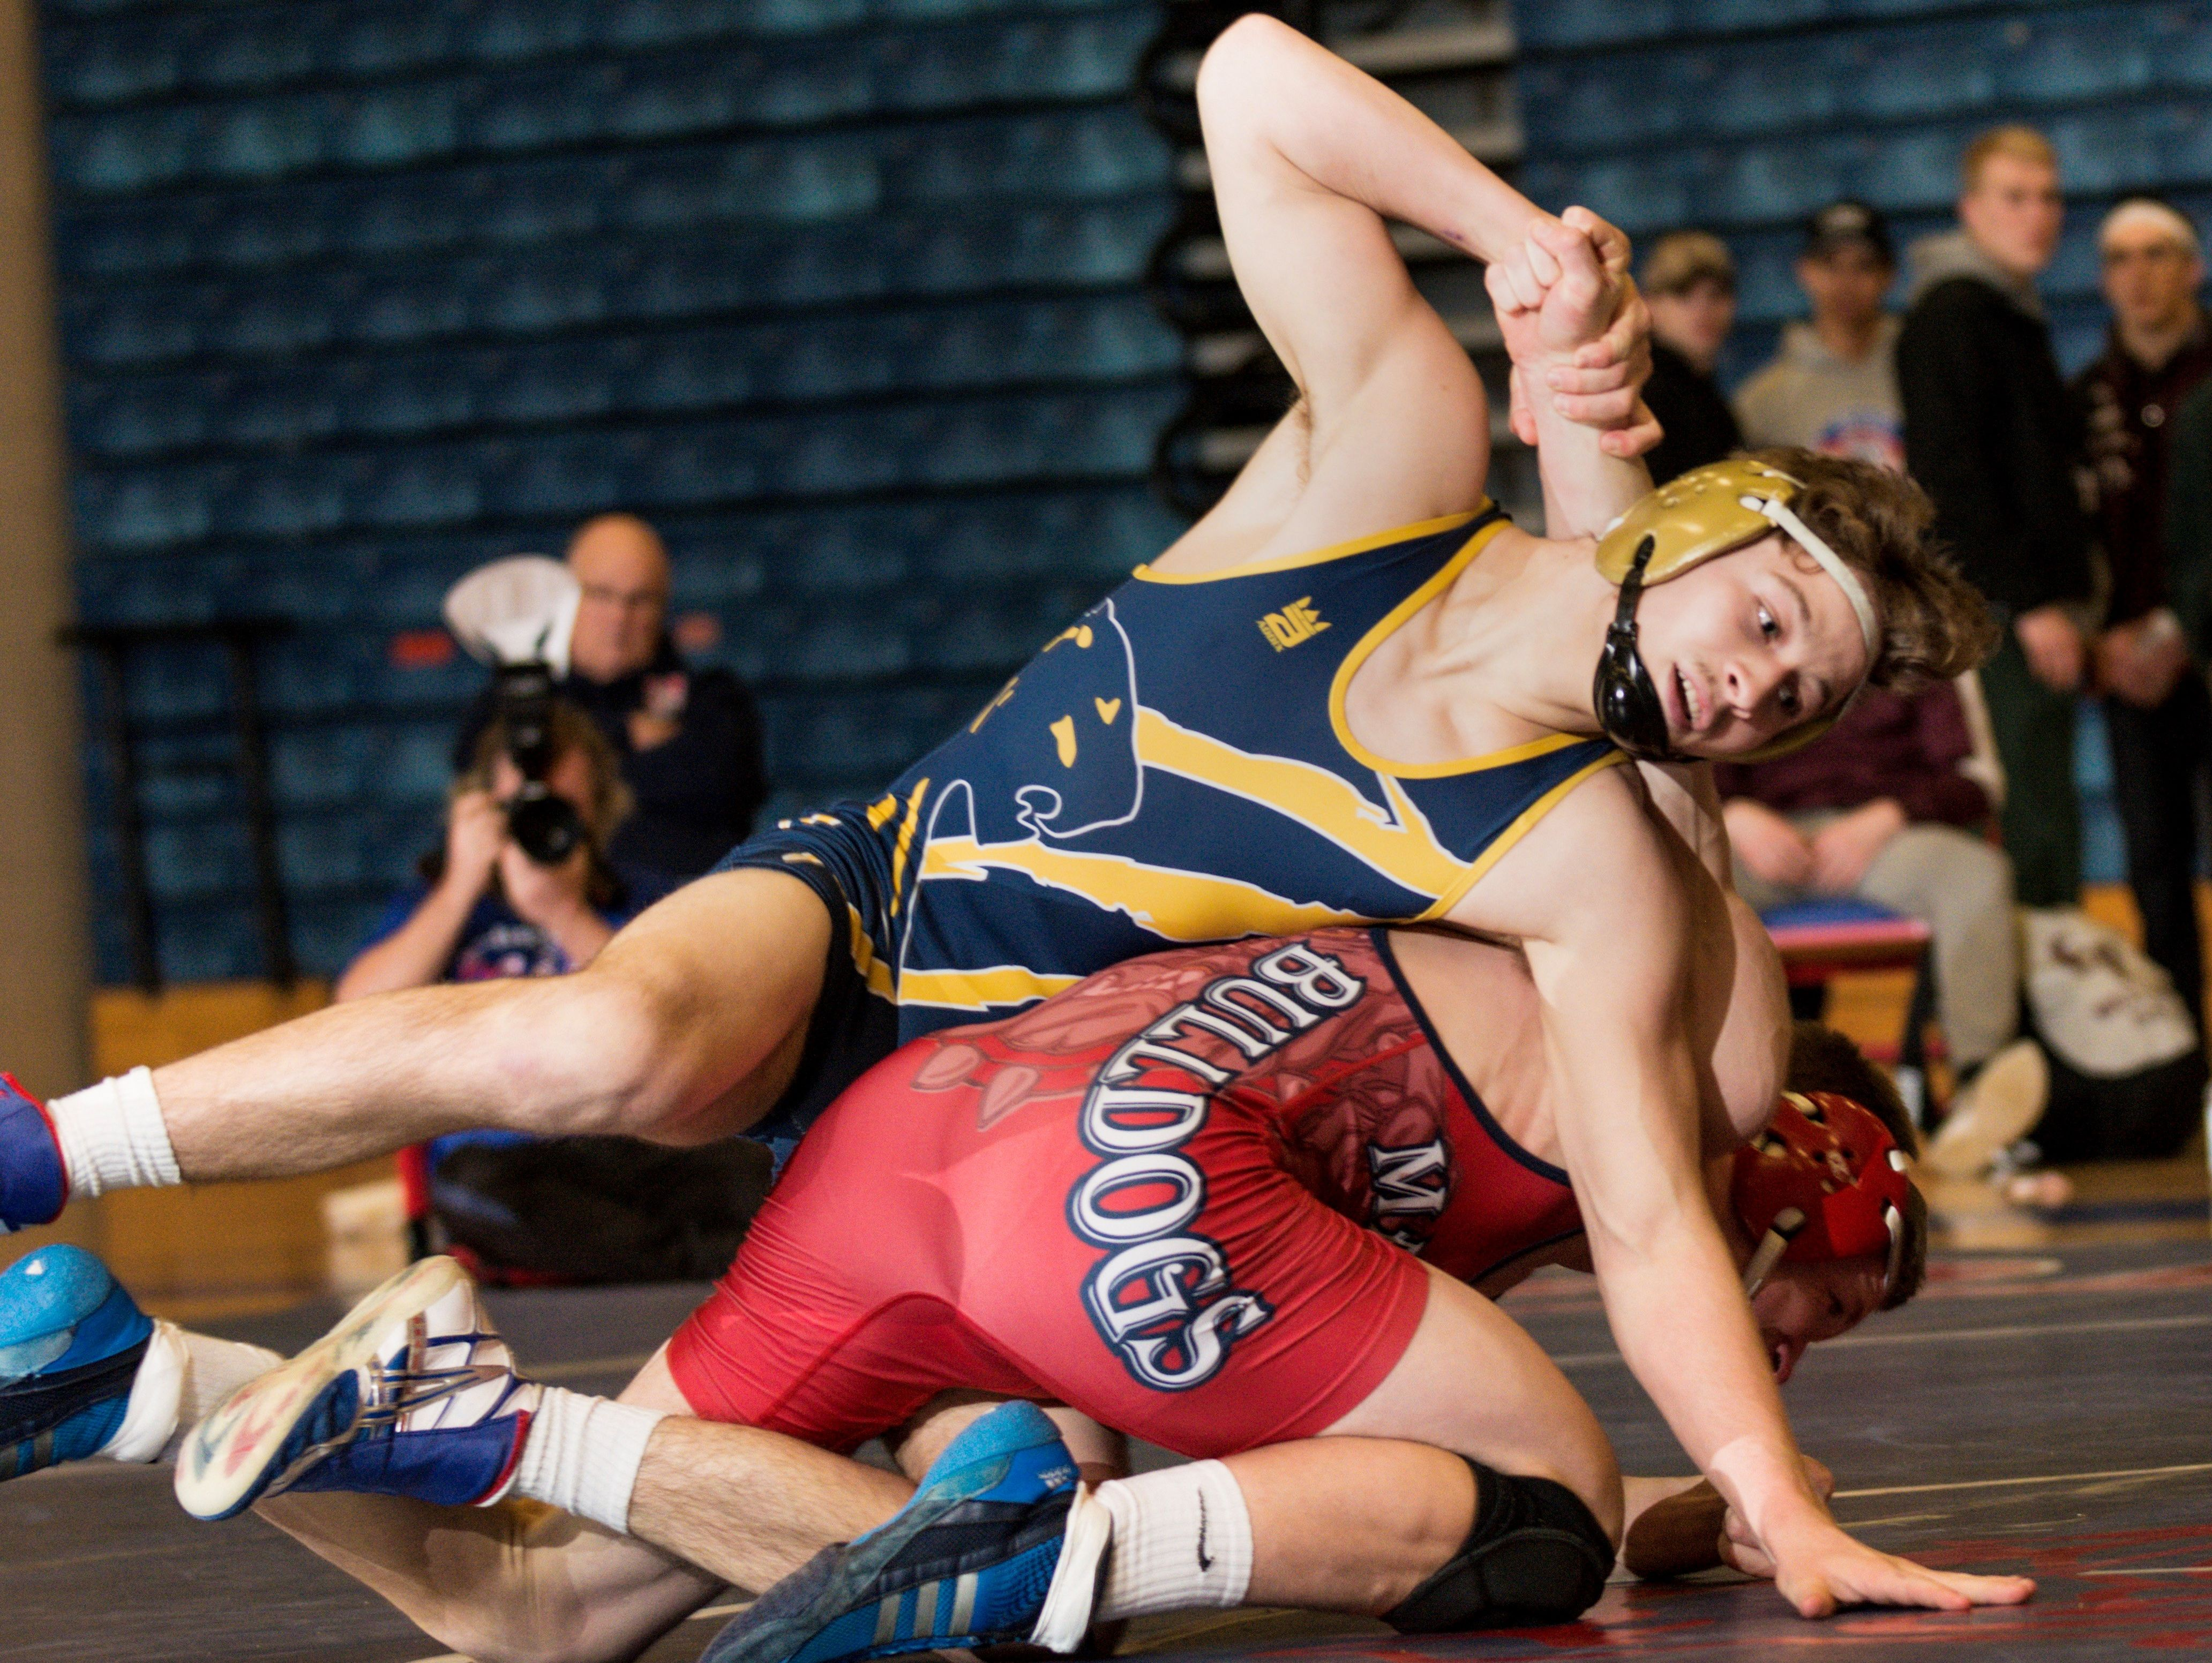 Sam York, left, of DeWitt attempts to turn Jared Surato of Mason during their 160lb. Division 2 regional final match Wednesday February 15, 2017 at Mason.